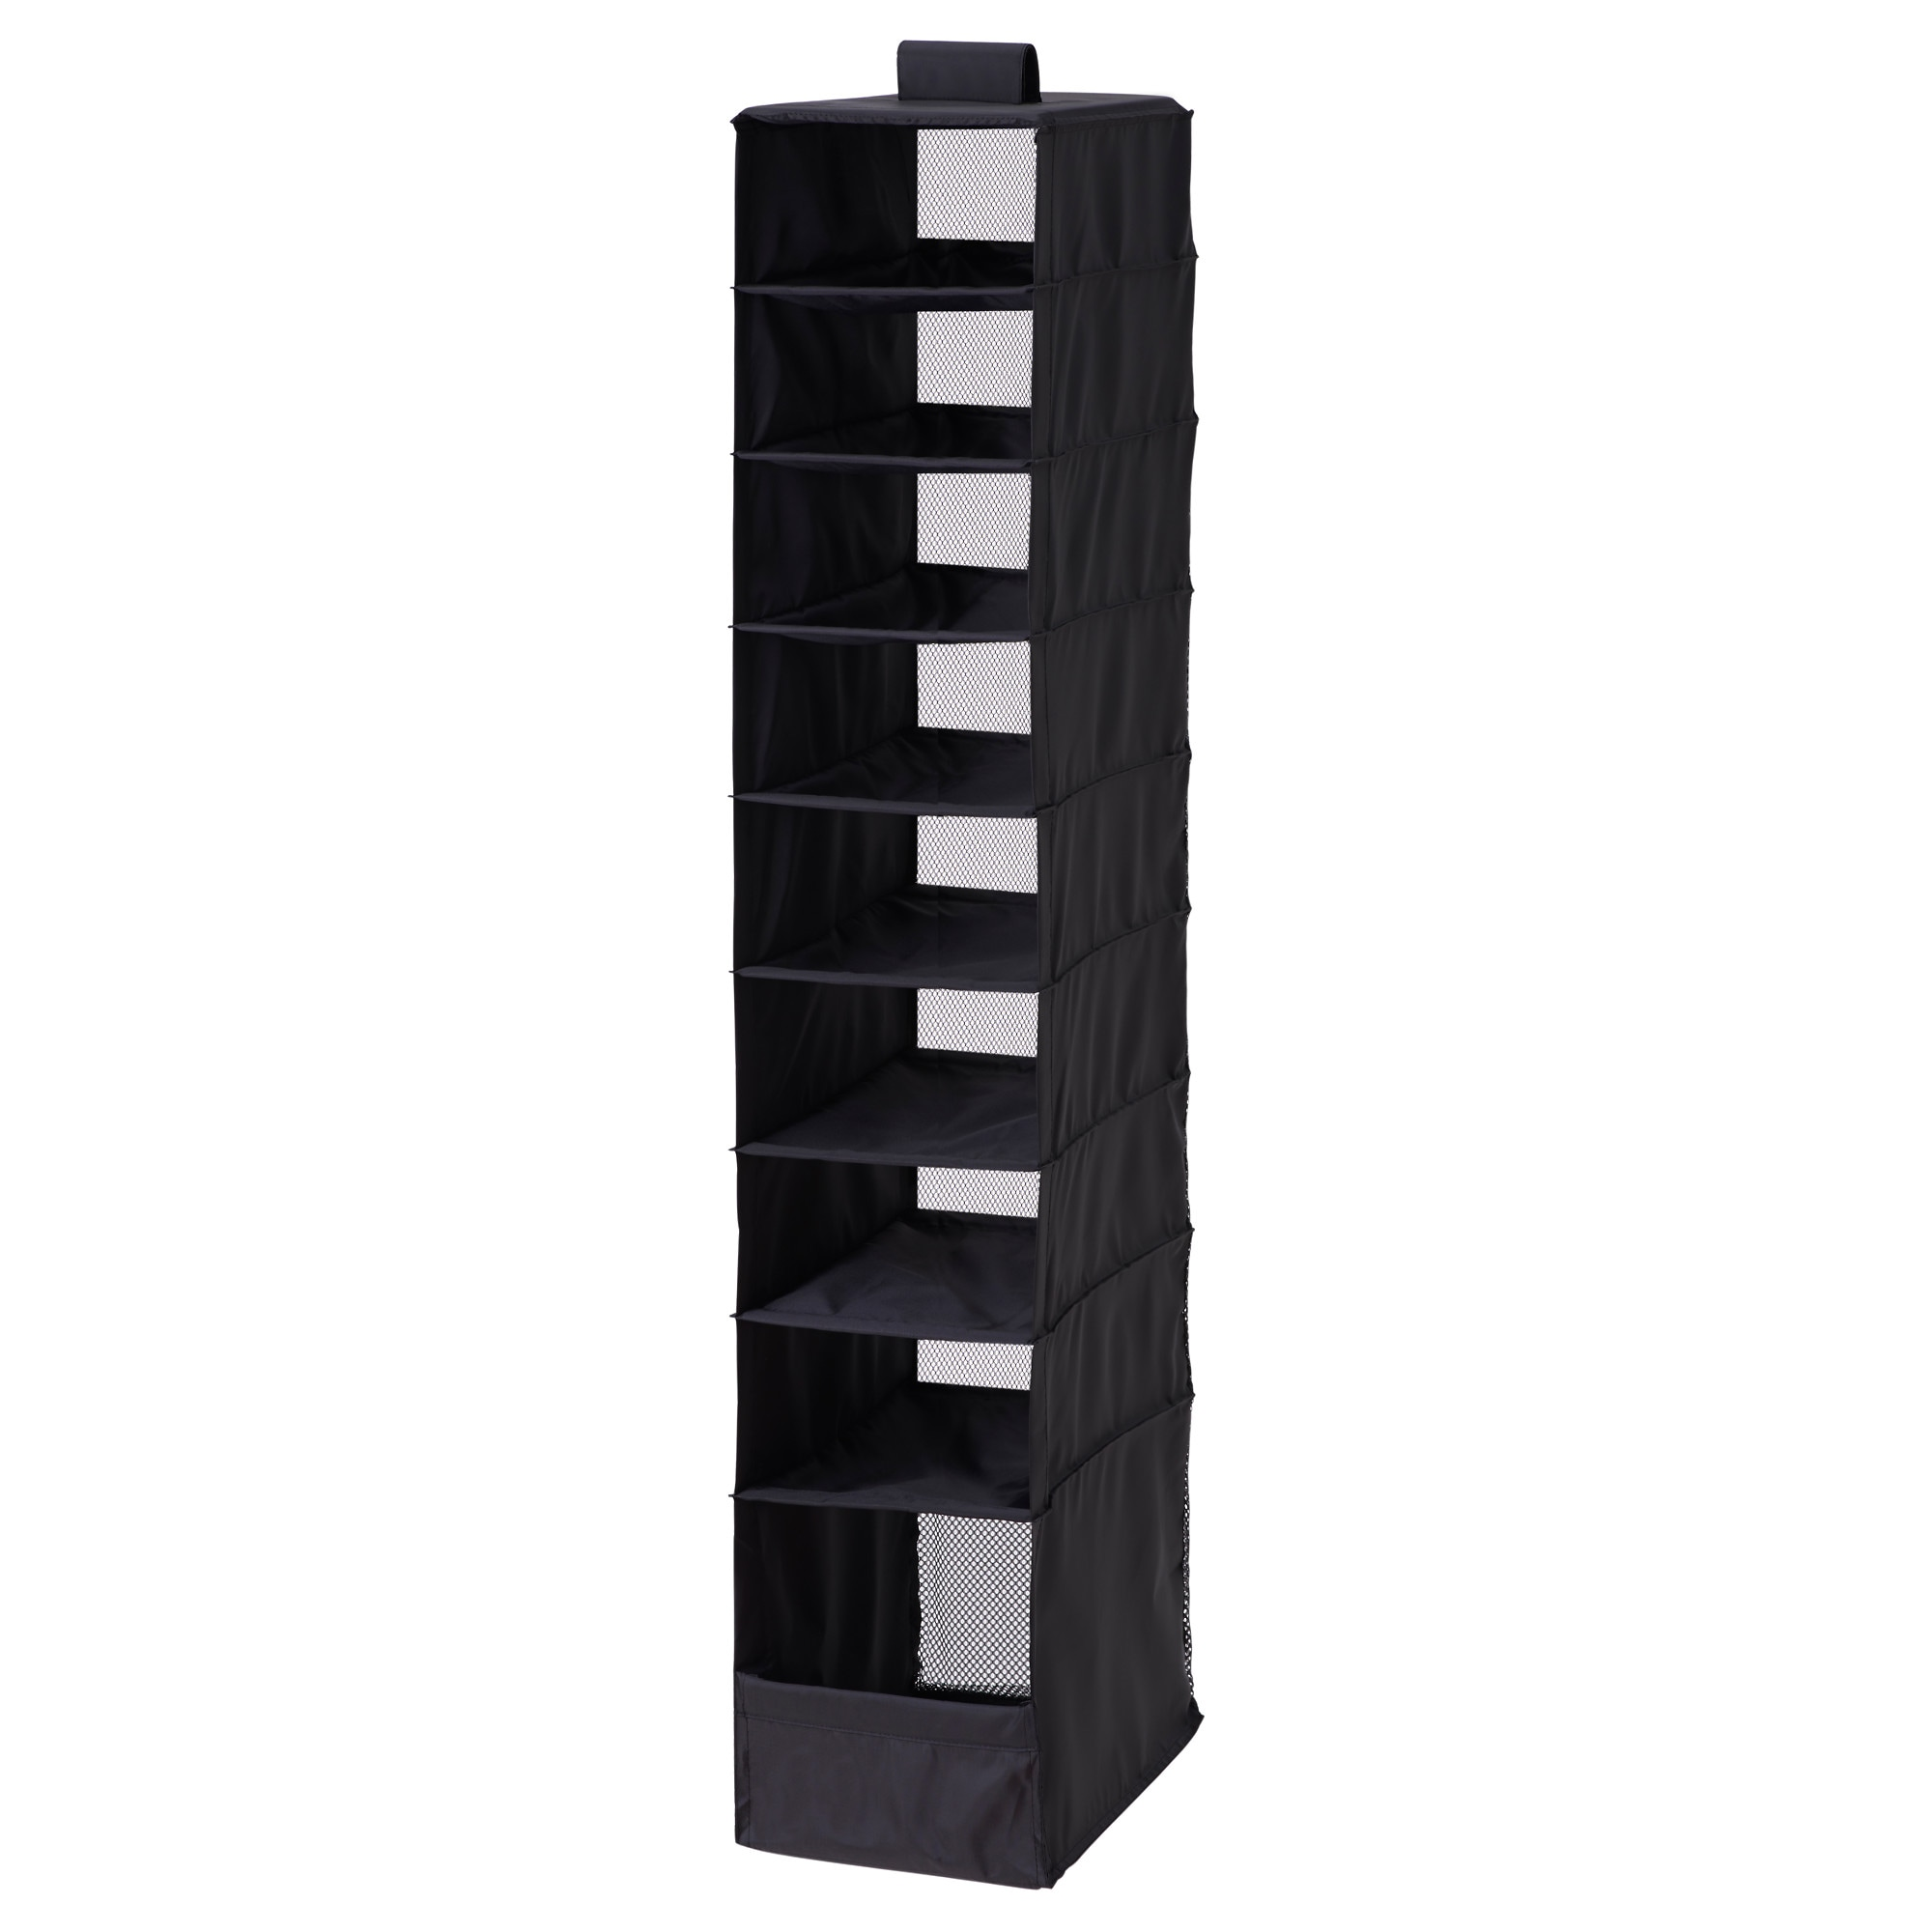 Design Ikea Shoe Storage skubb organizer with 9 compartments ikea